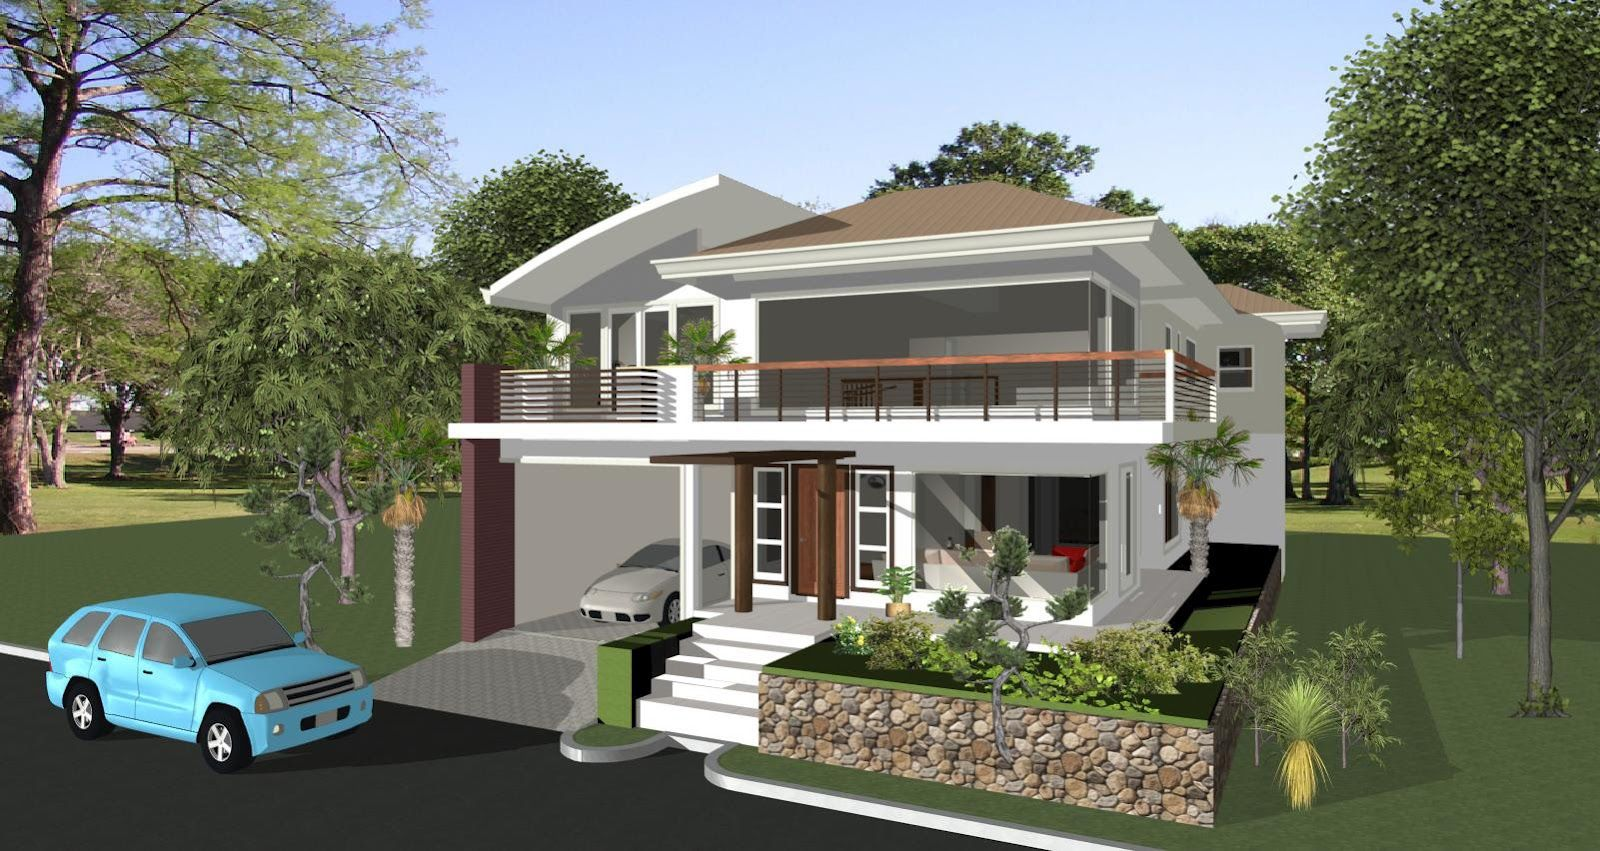 Dream home designs erecre group realty design and for Dream house plans